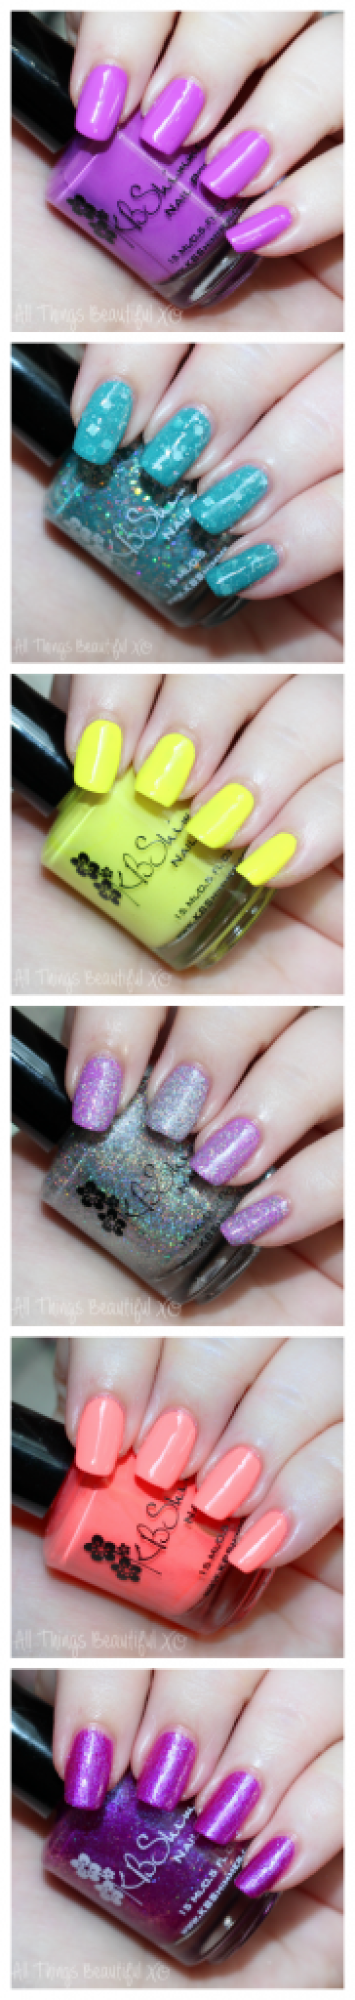 KBShimmer Summer 2015 Nail Polish Swatches & Review with Glitter & Neons on All Things Beautiful XO | www.allthingsbeautifulxo.com